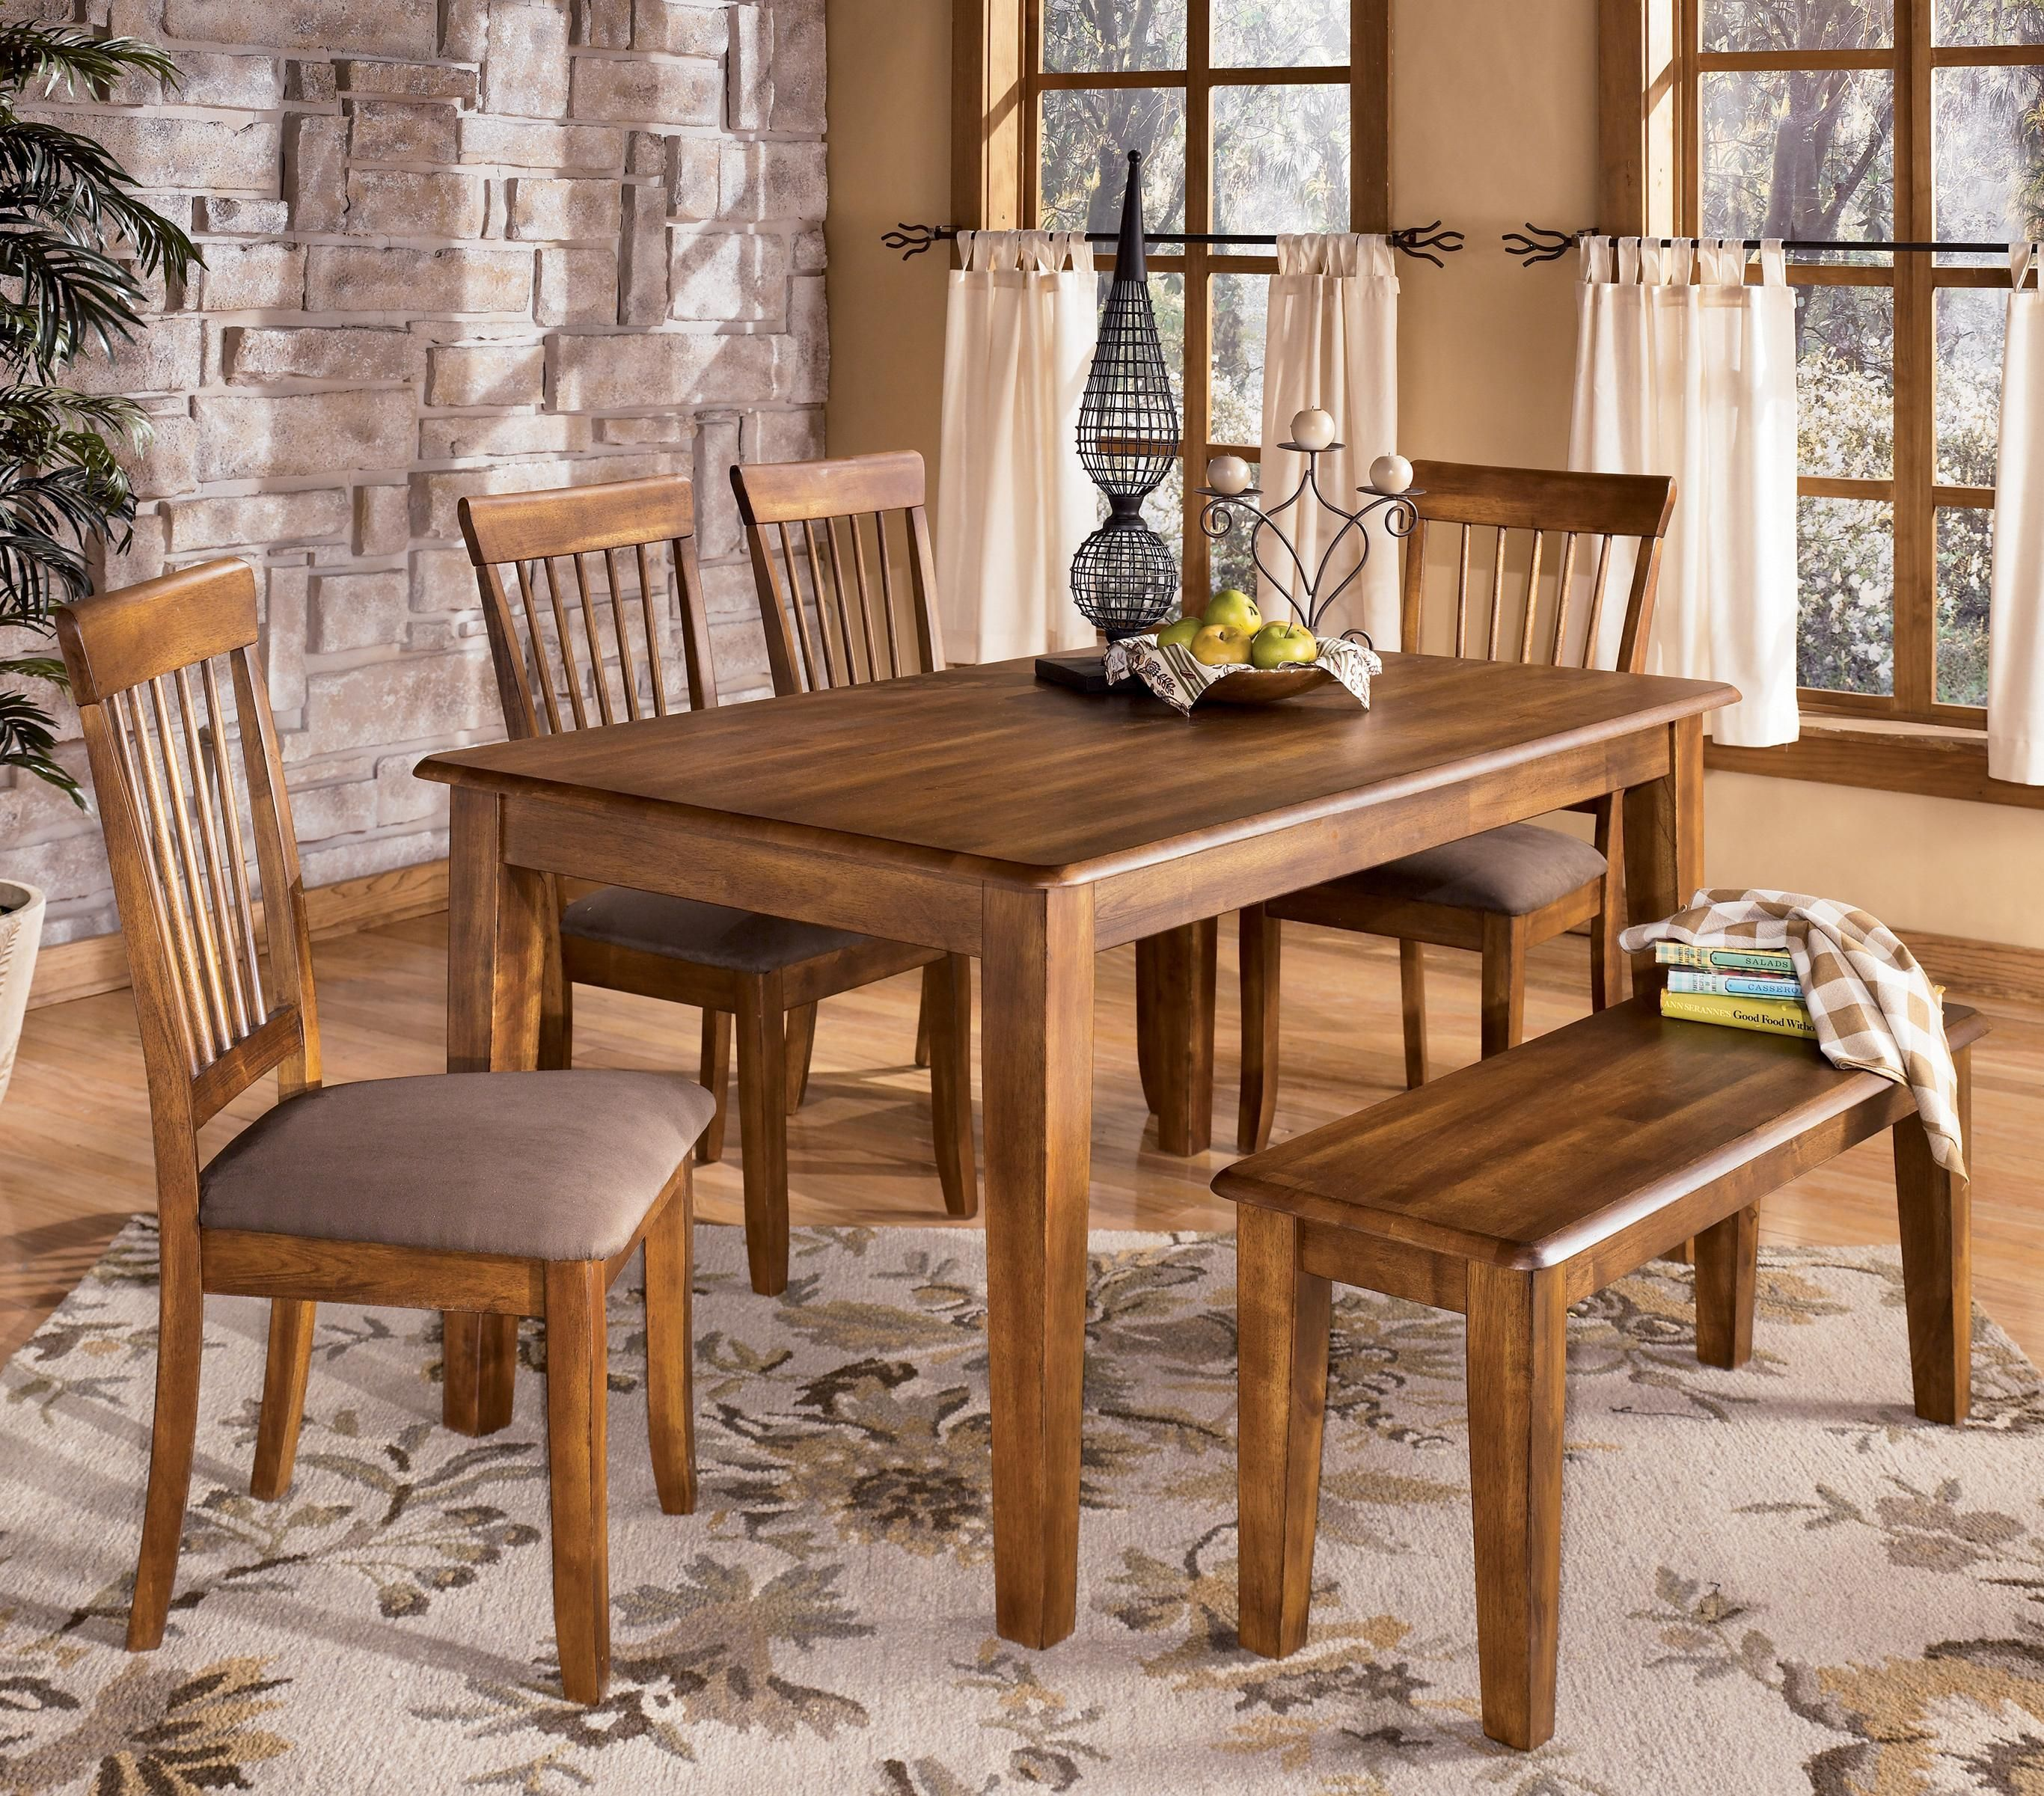 Ashley Dining Room Chairs Berringer 36 X 60 Table With 4 Chairs Home Decor